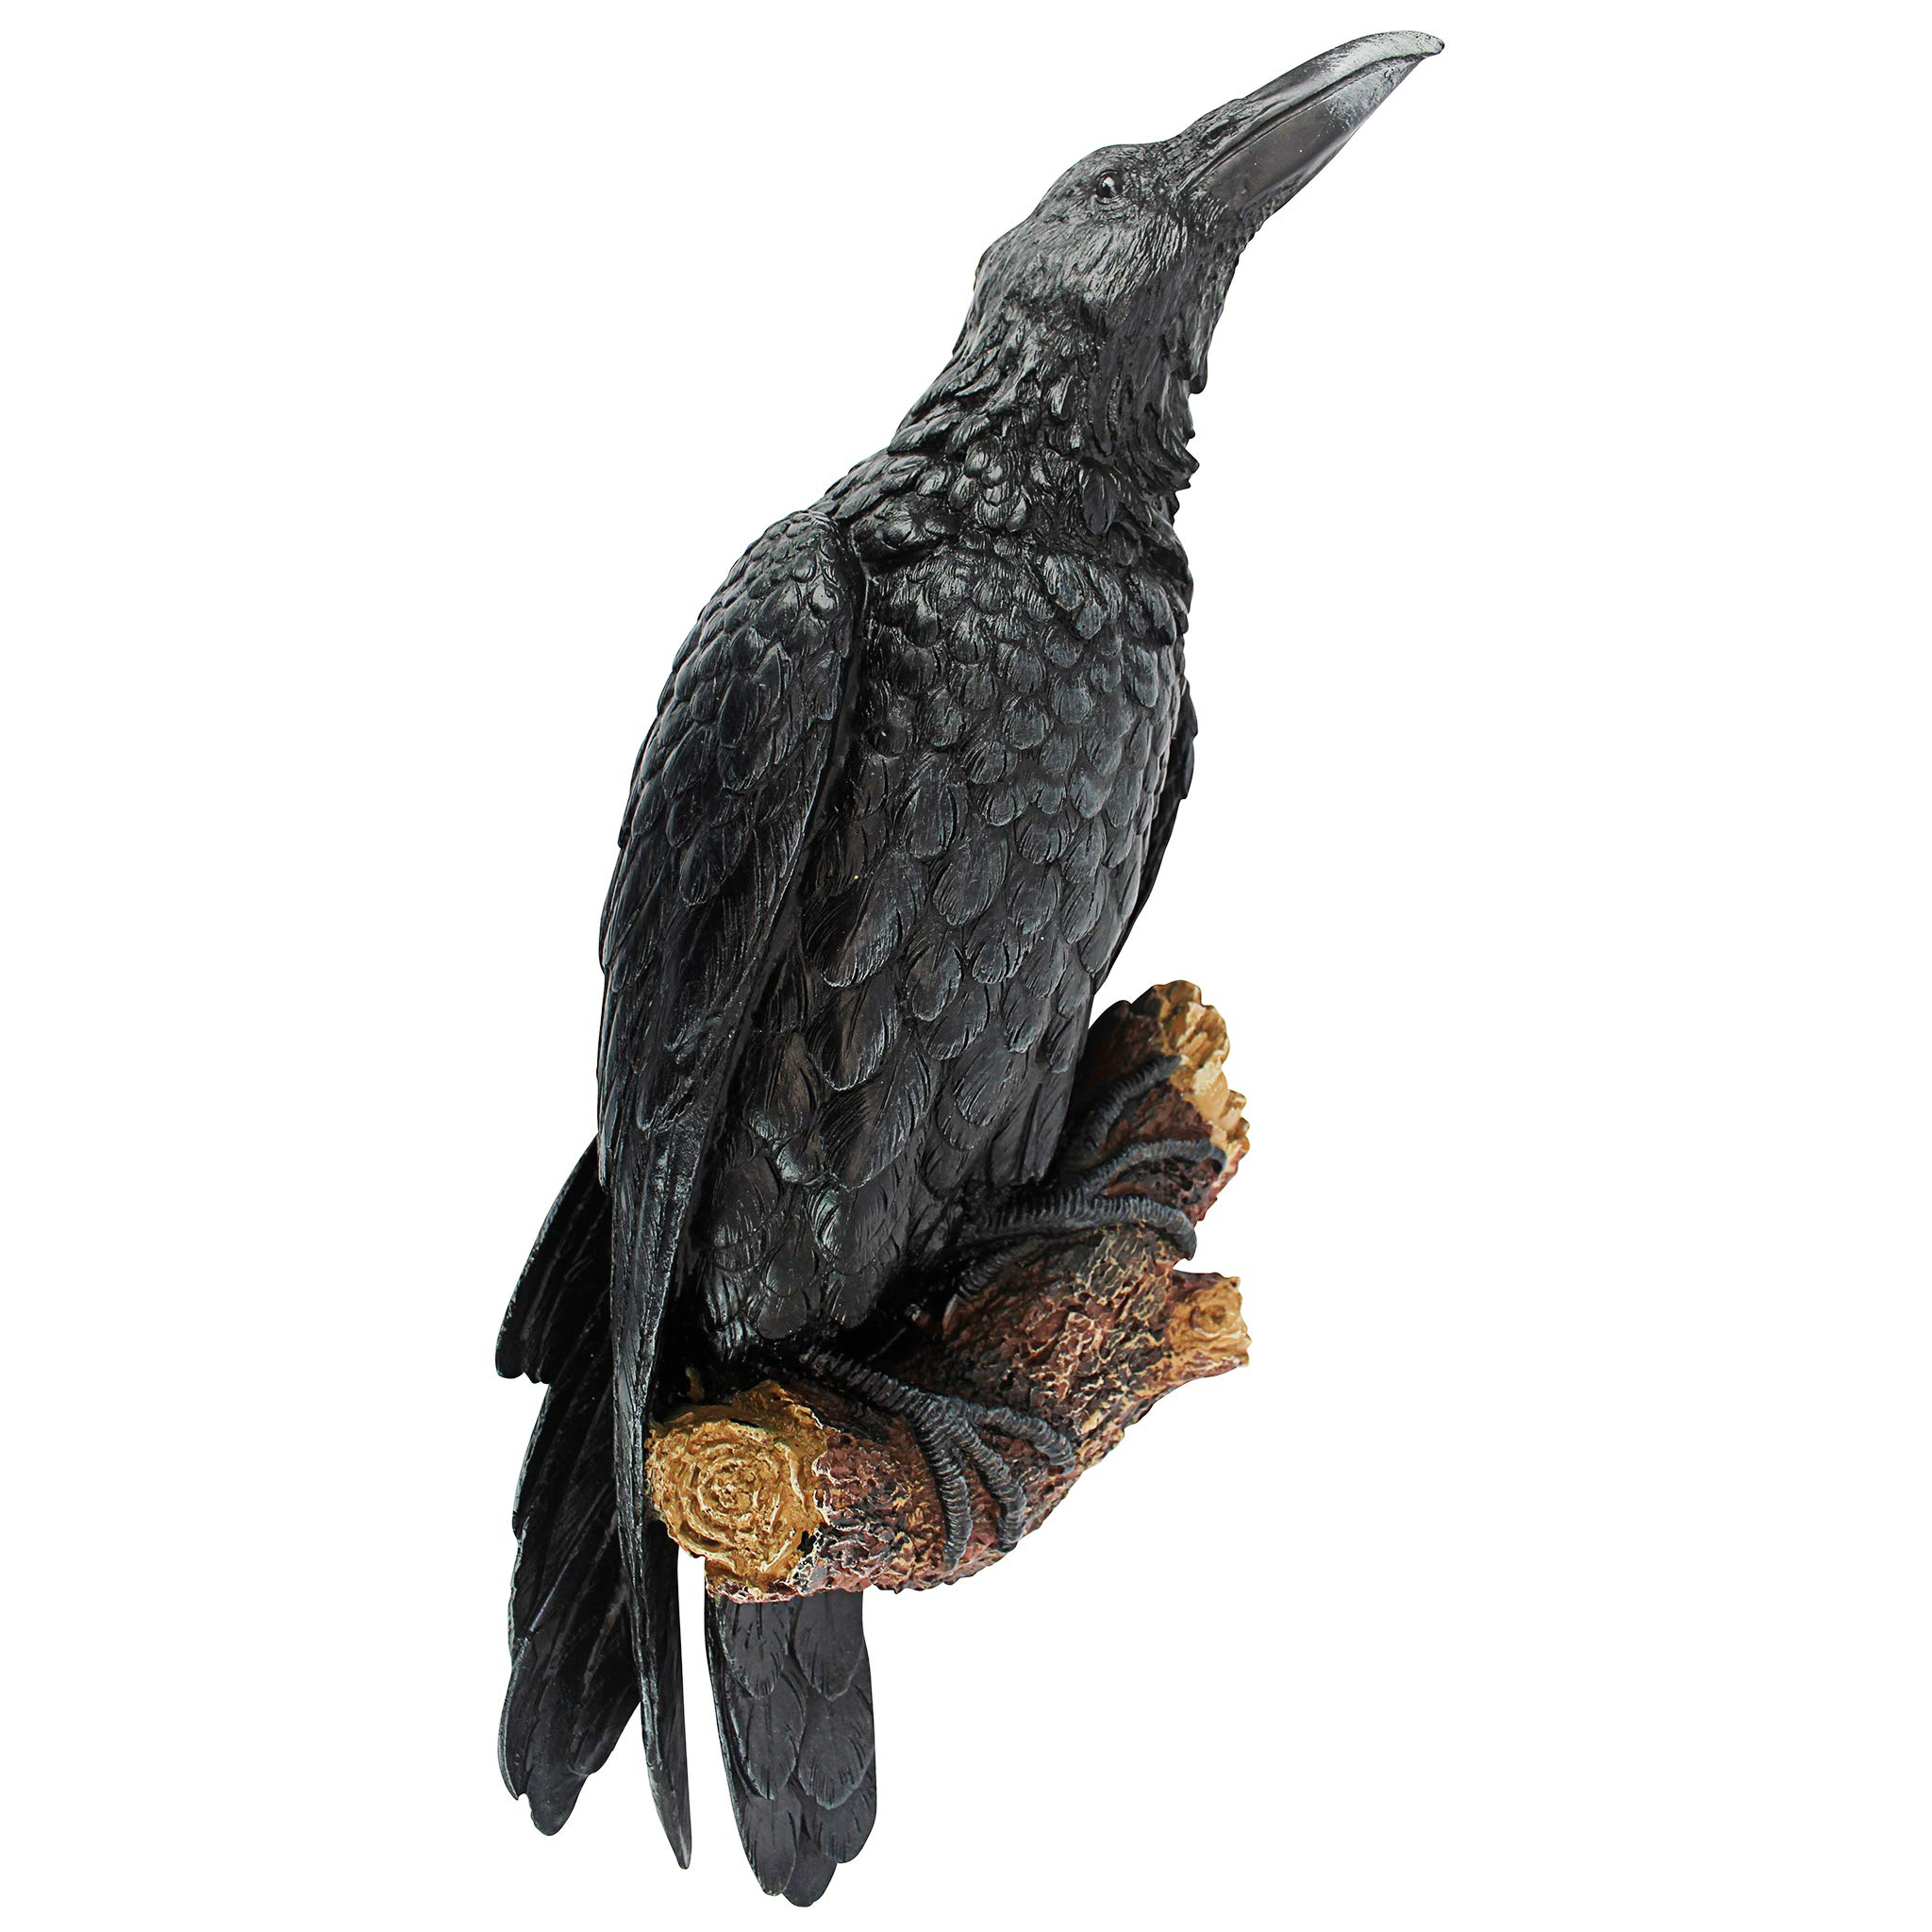 Design Toscano The Raven's Perch Halloween Gothic Decor Wall Sculpture, 18 Inch, Polyresin, Full Color